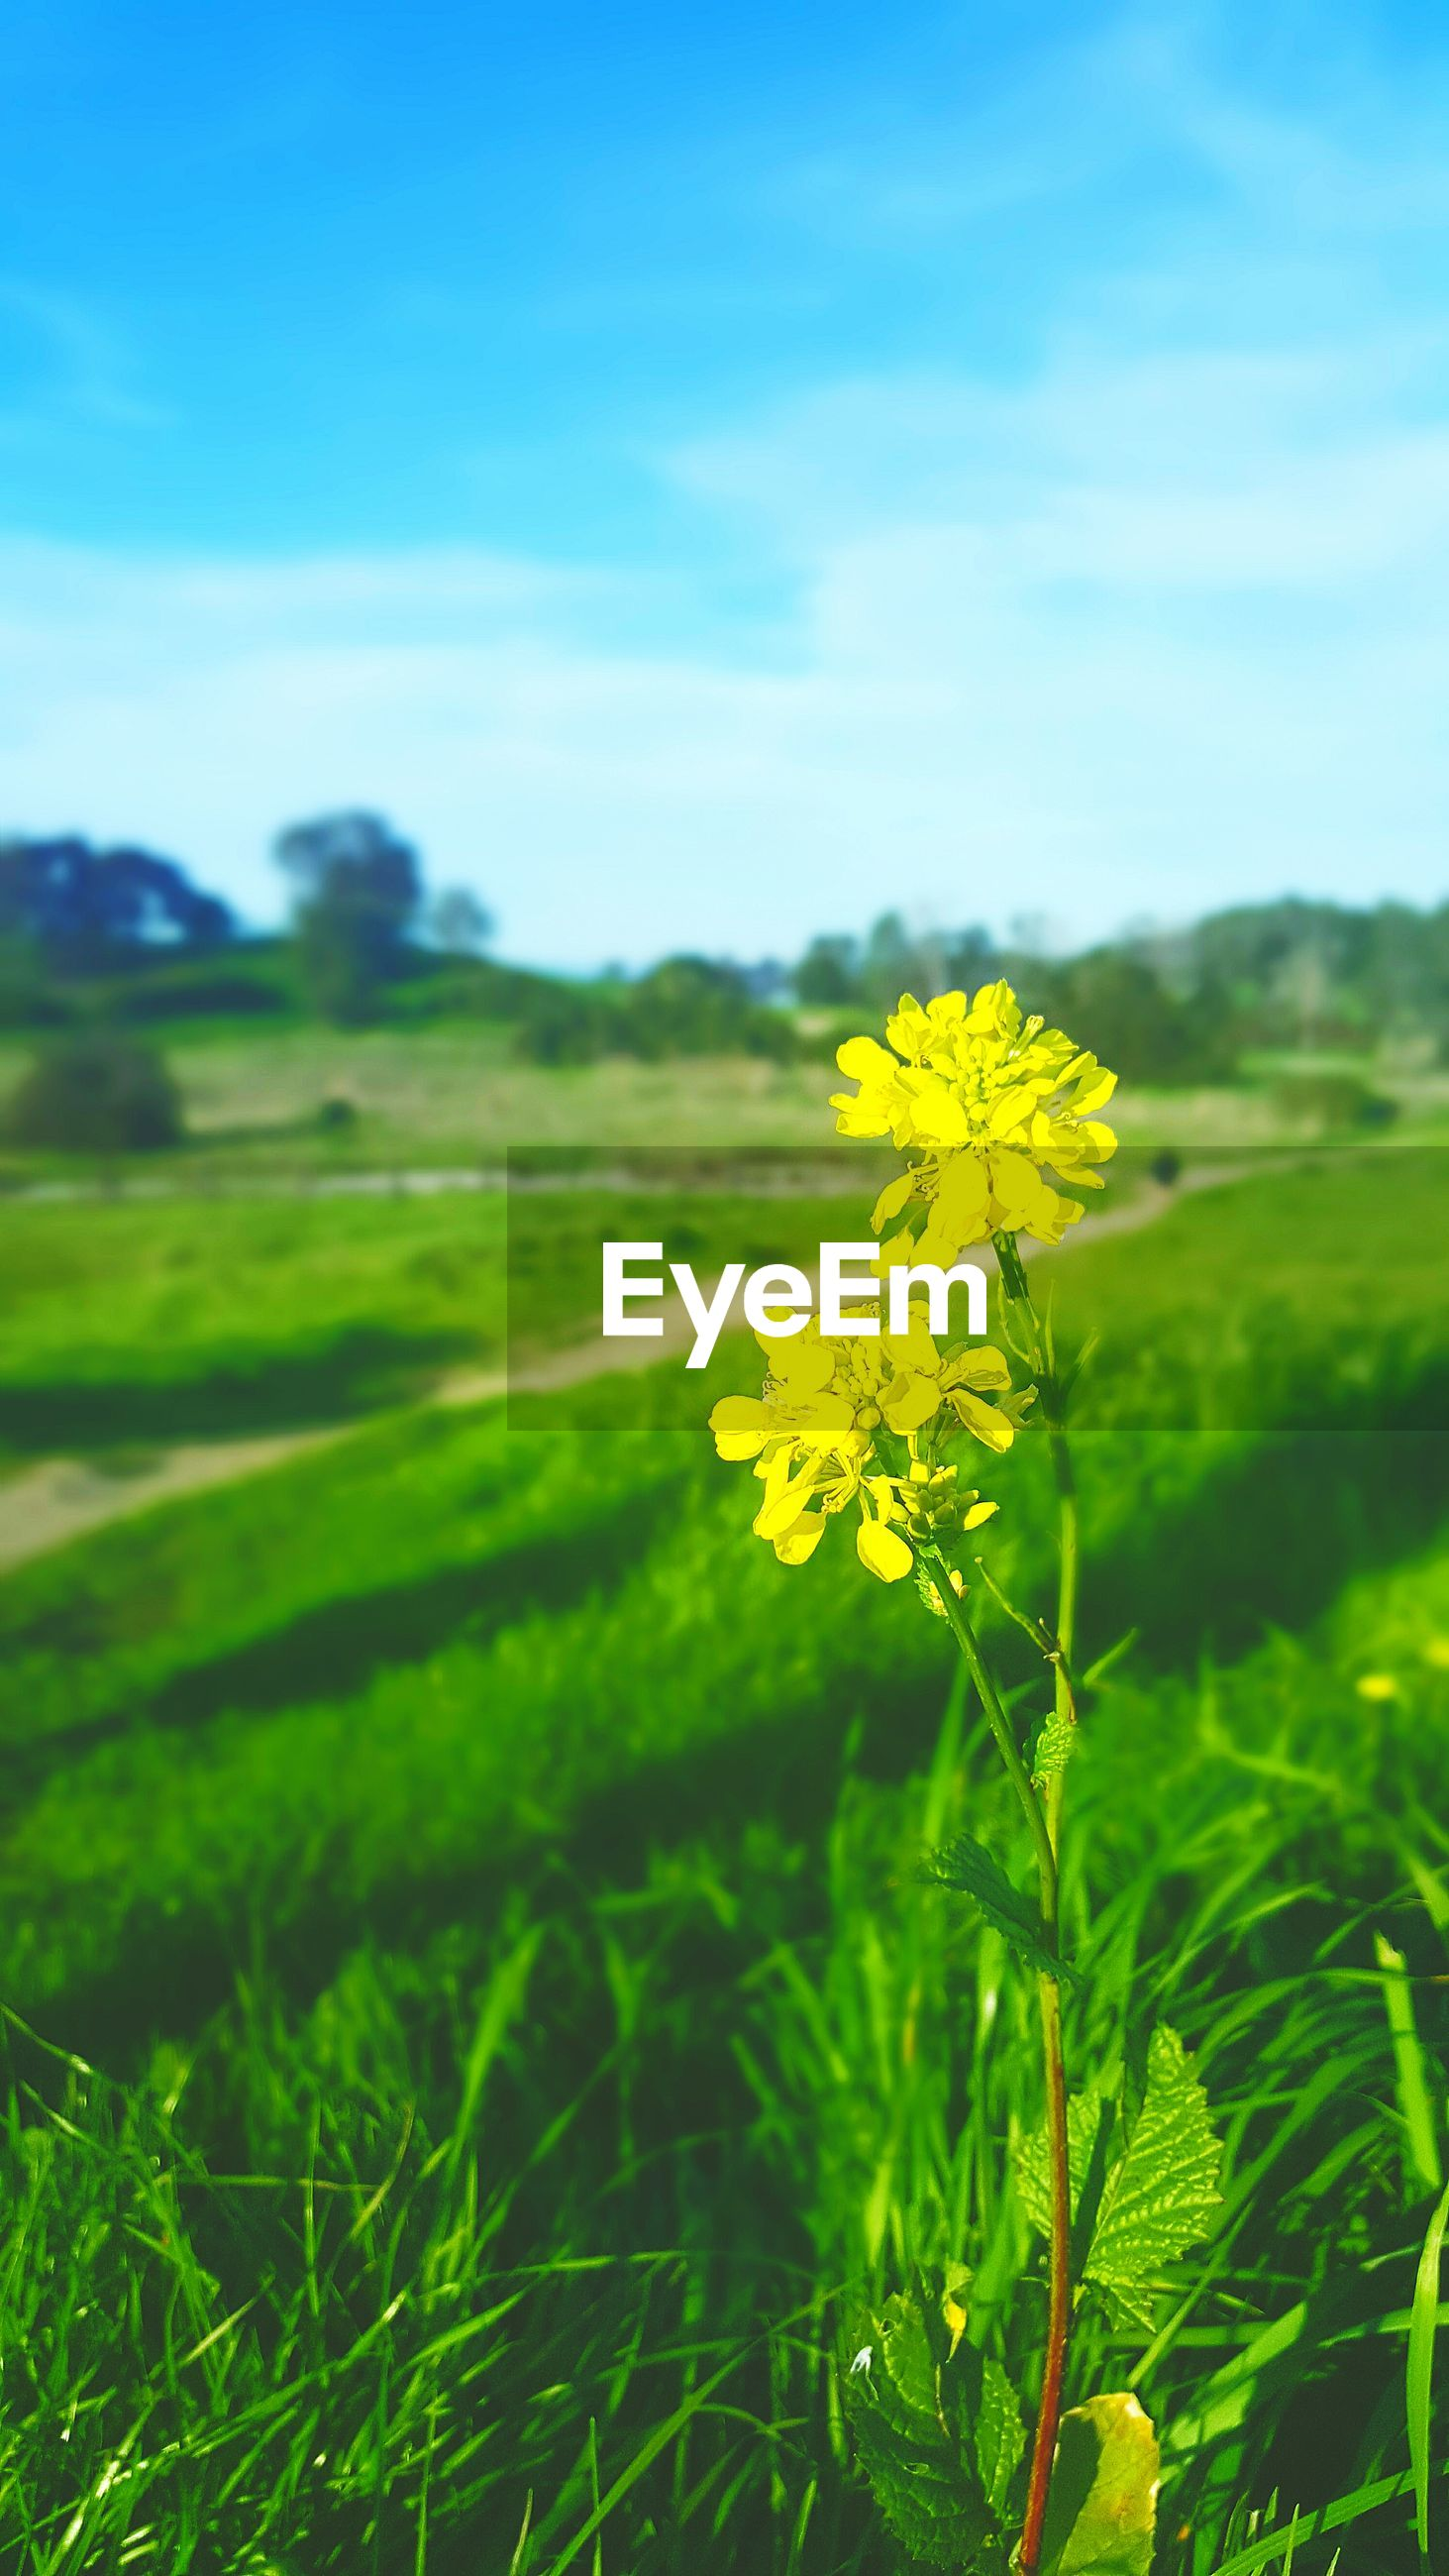 Yellow flowers blooming in field